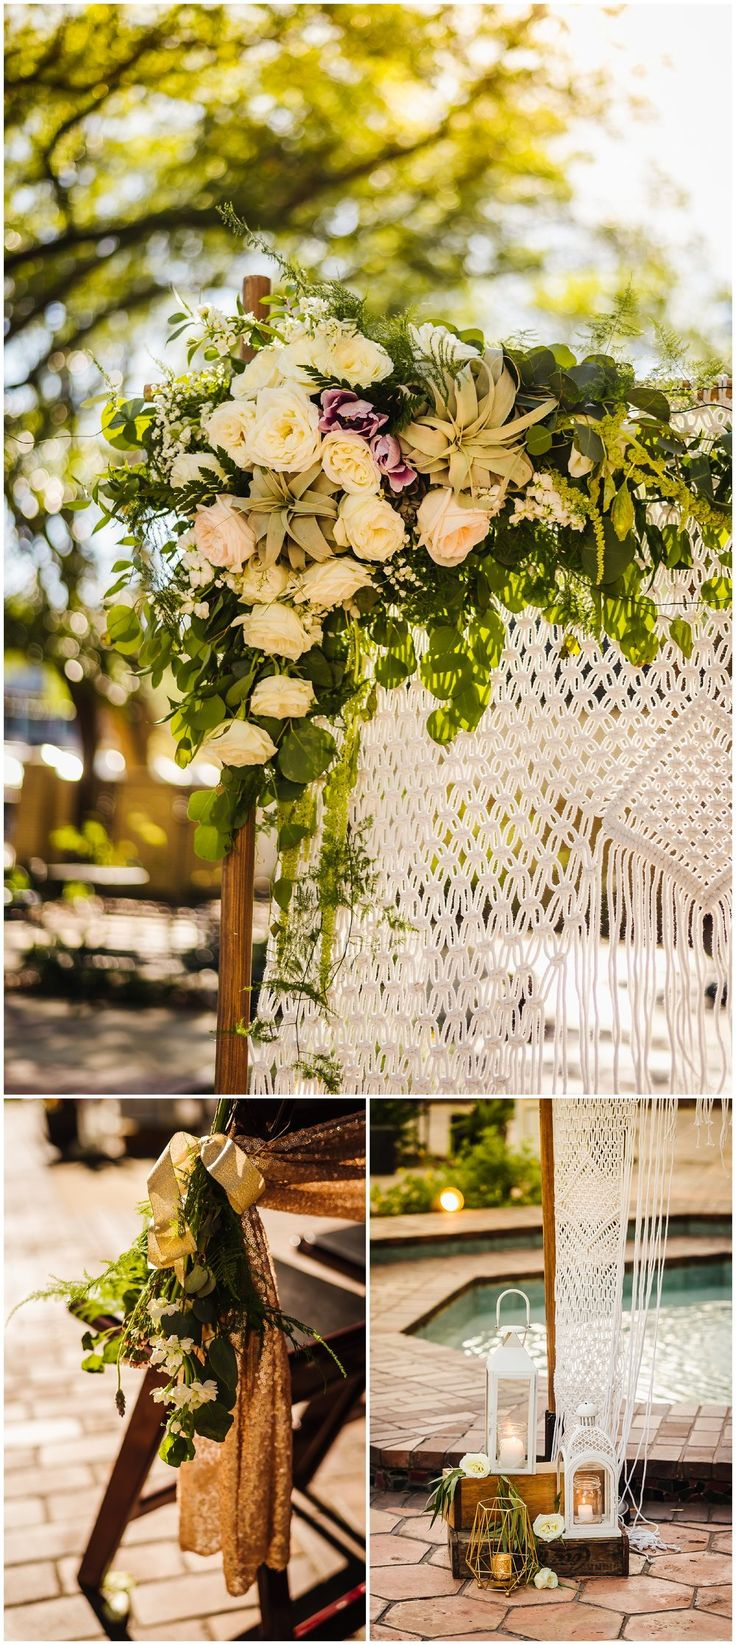 best images on pinterest wedding ideas ybor city